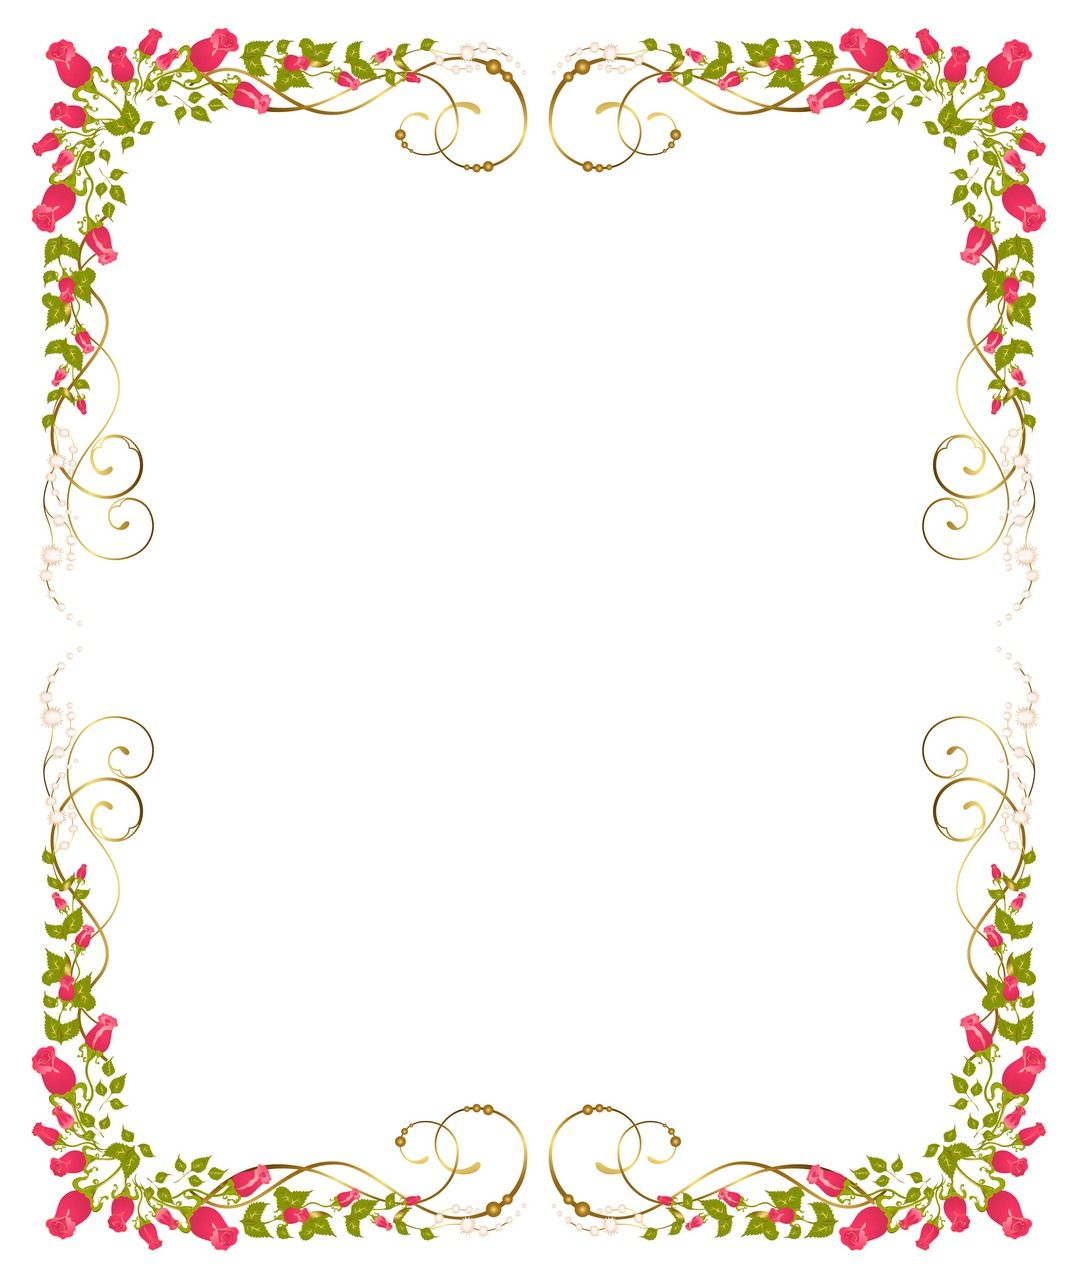 small resolution of flower background frame 09 vector eps free download logo icons brand emblems